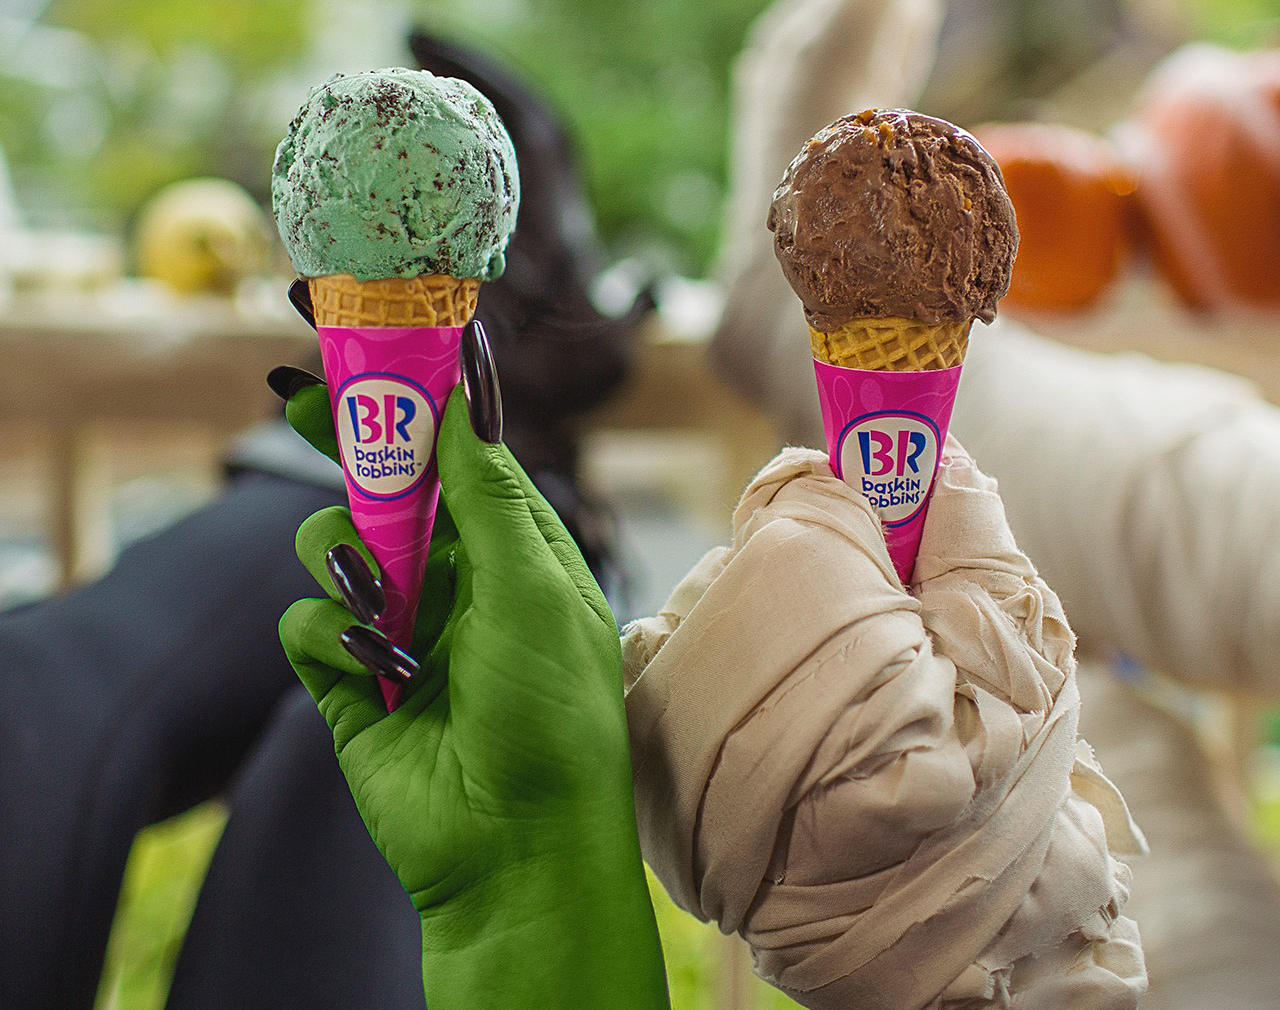 Halloween freebies and deals – baskin robbins halloween cones